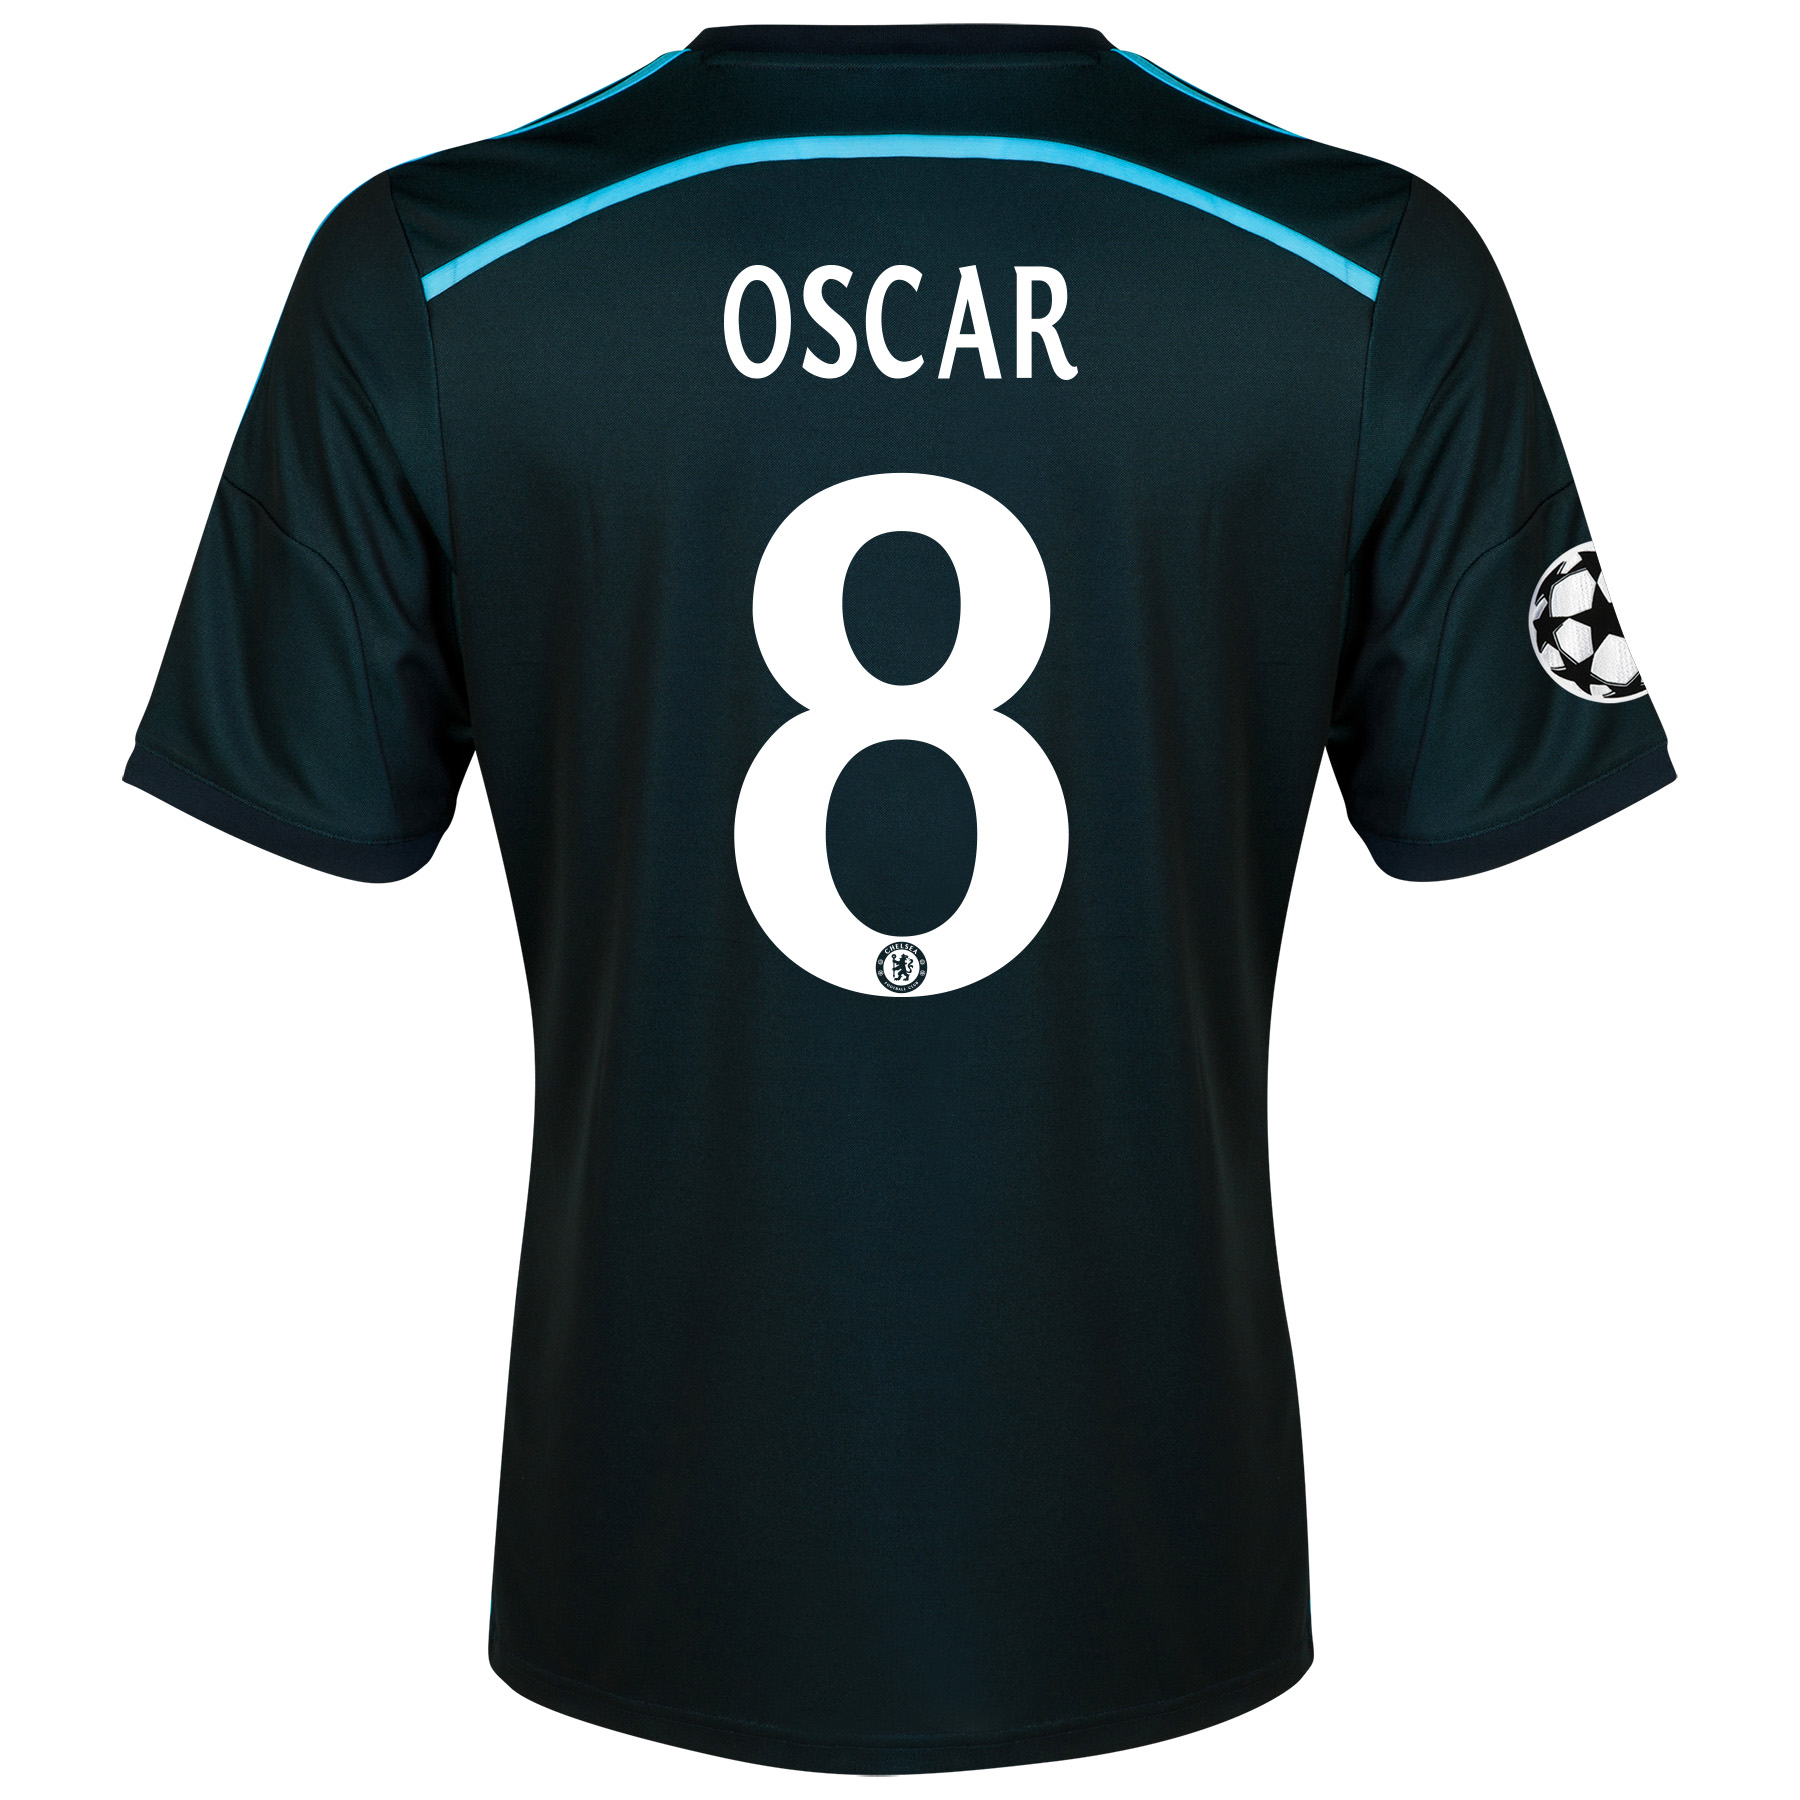 Chelsea UEFA Champions League Third Shirt 2014/15 with Oscar 11 printing